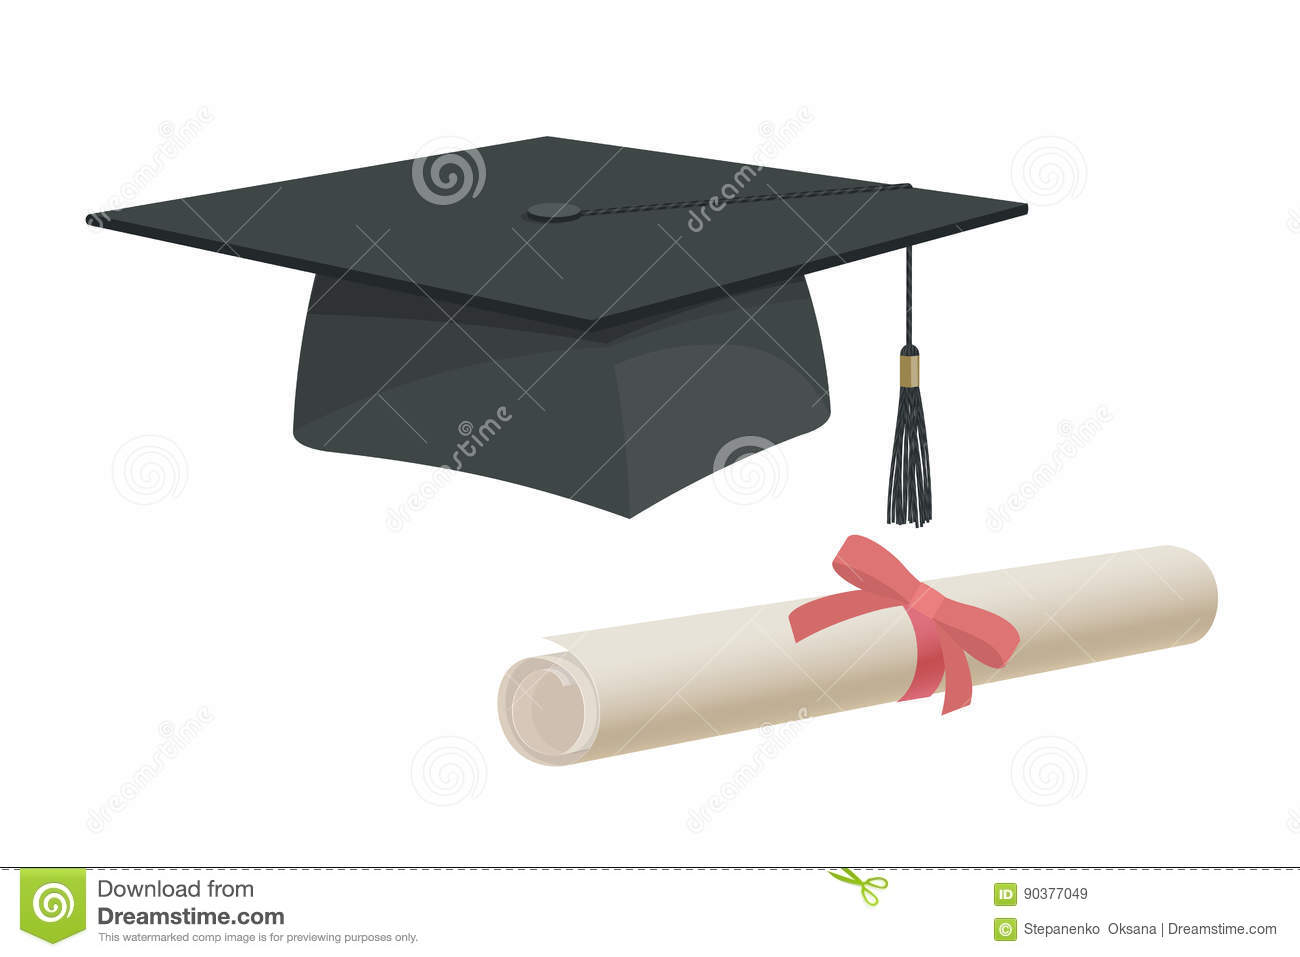 Graduation cap hat and certificate university academy diploma college bachelor prom icon element flat cartoon design